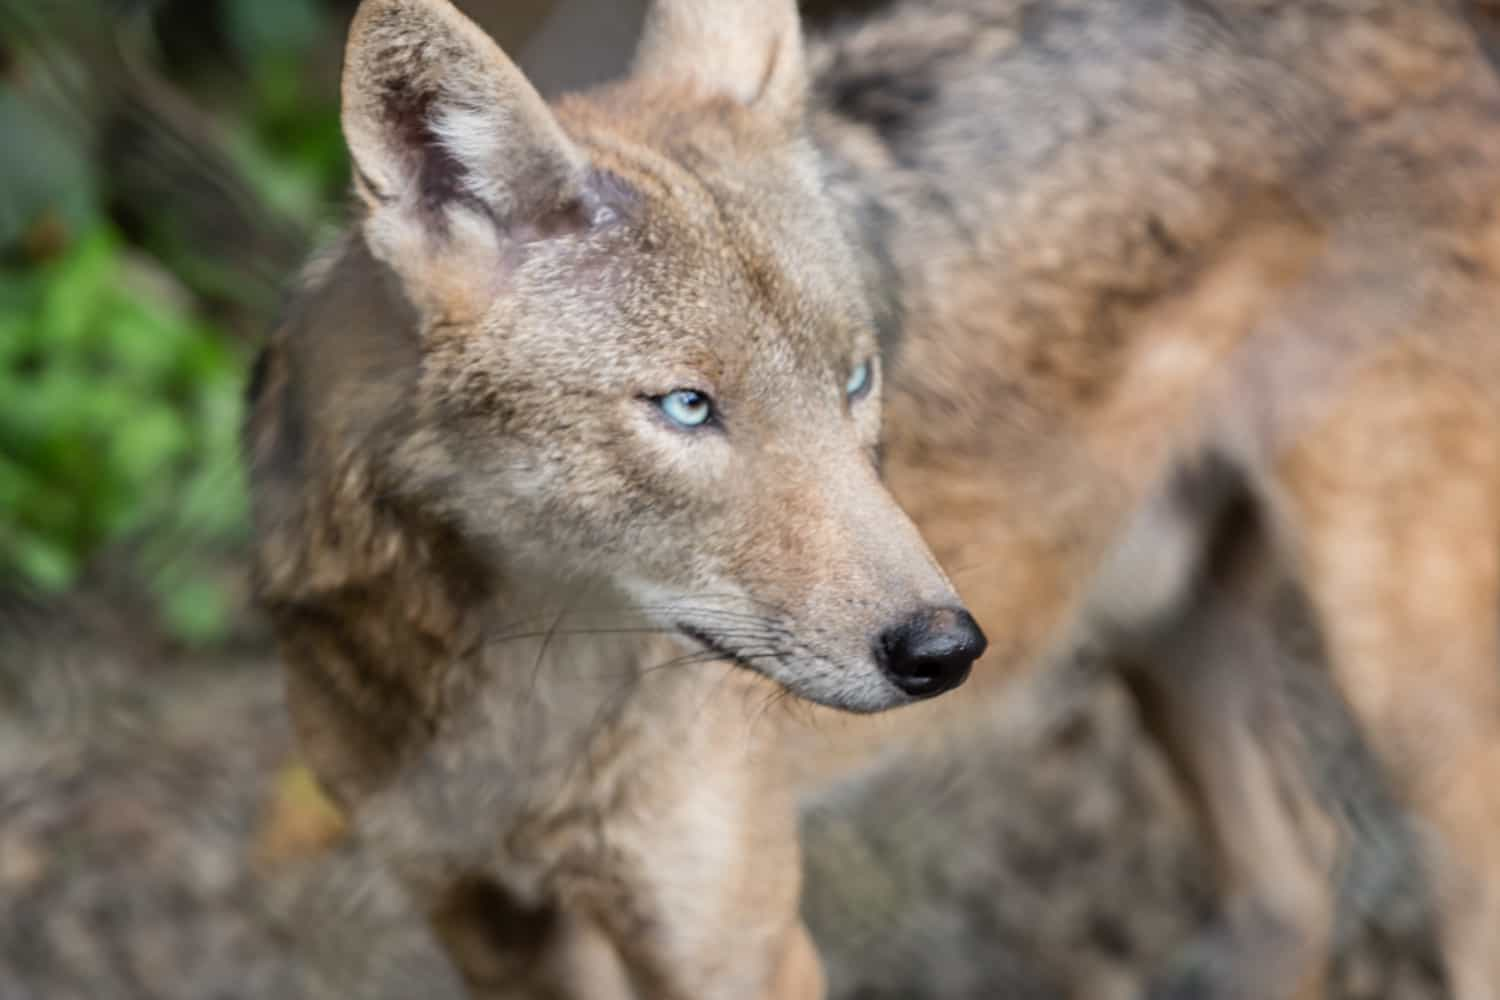 Coyote with blue eyes that is native to Costa Rica.